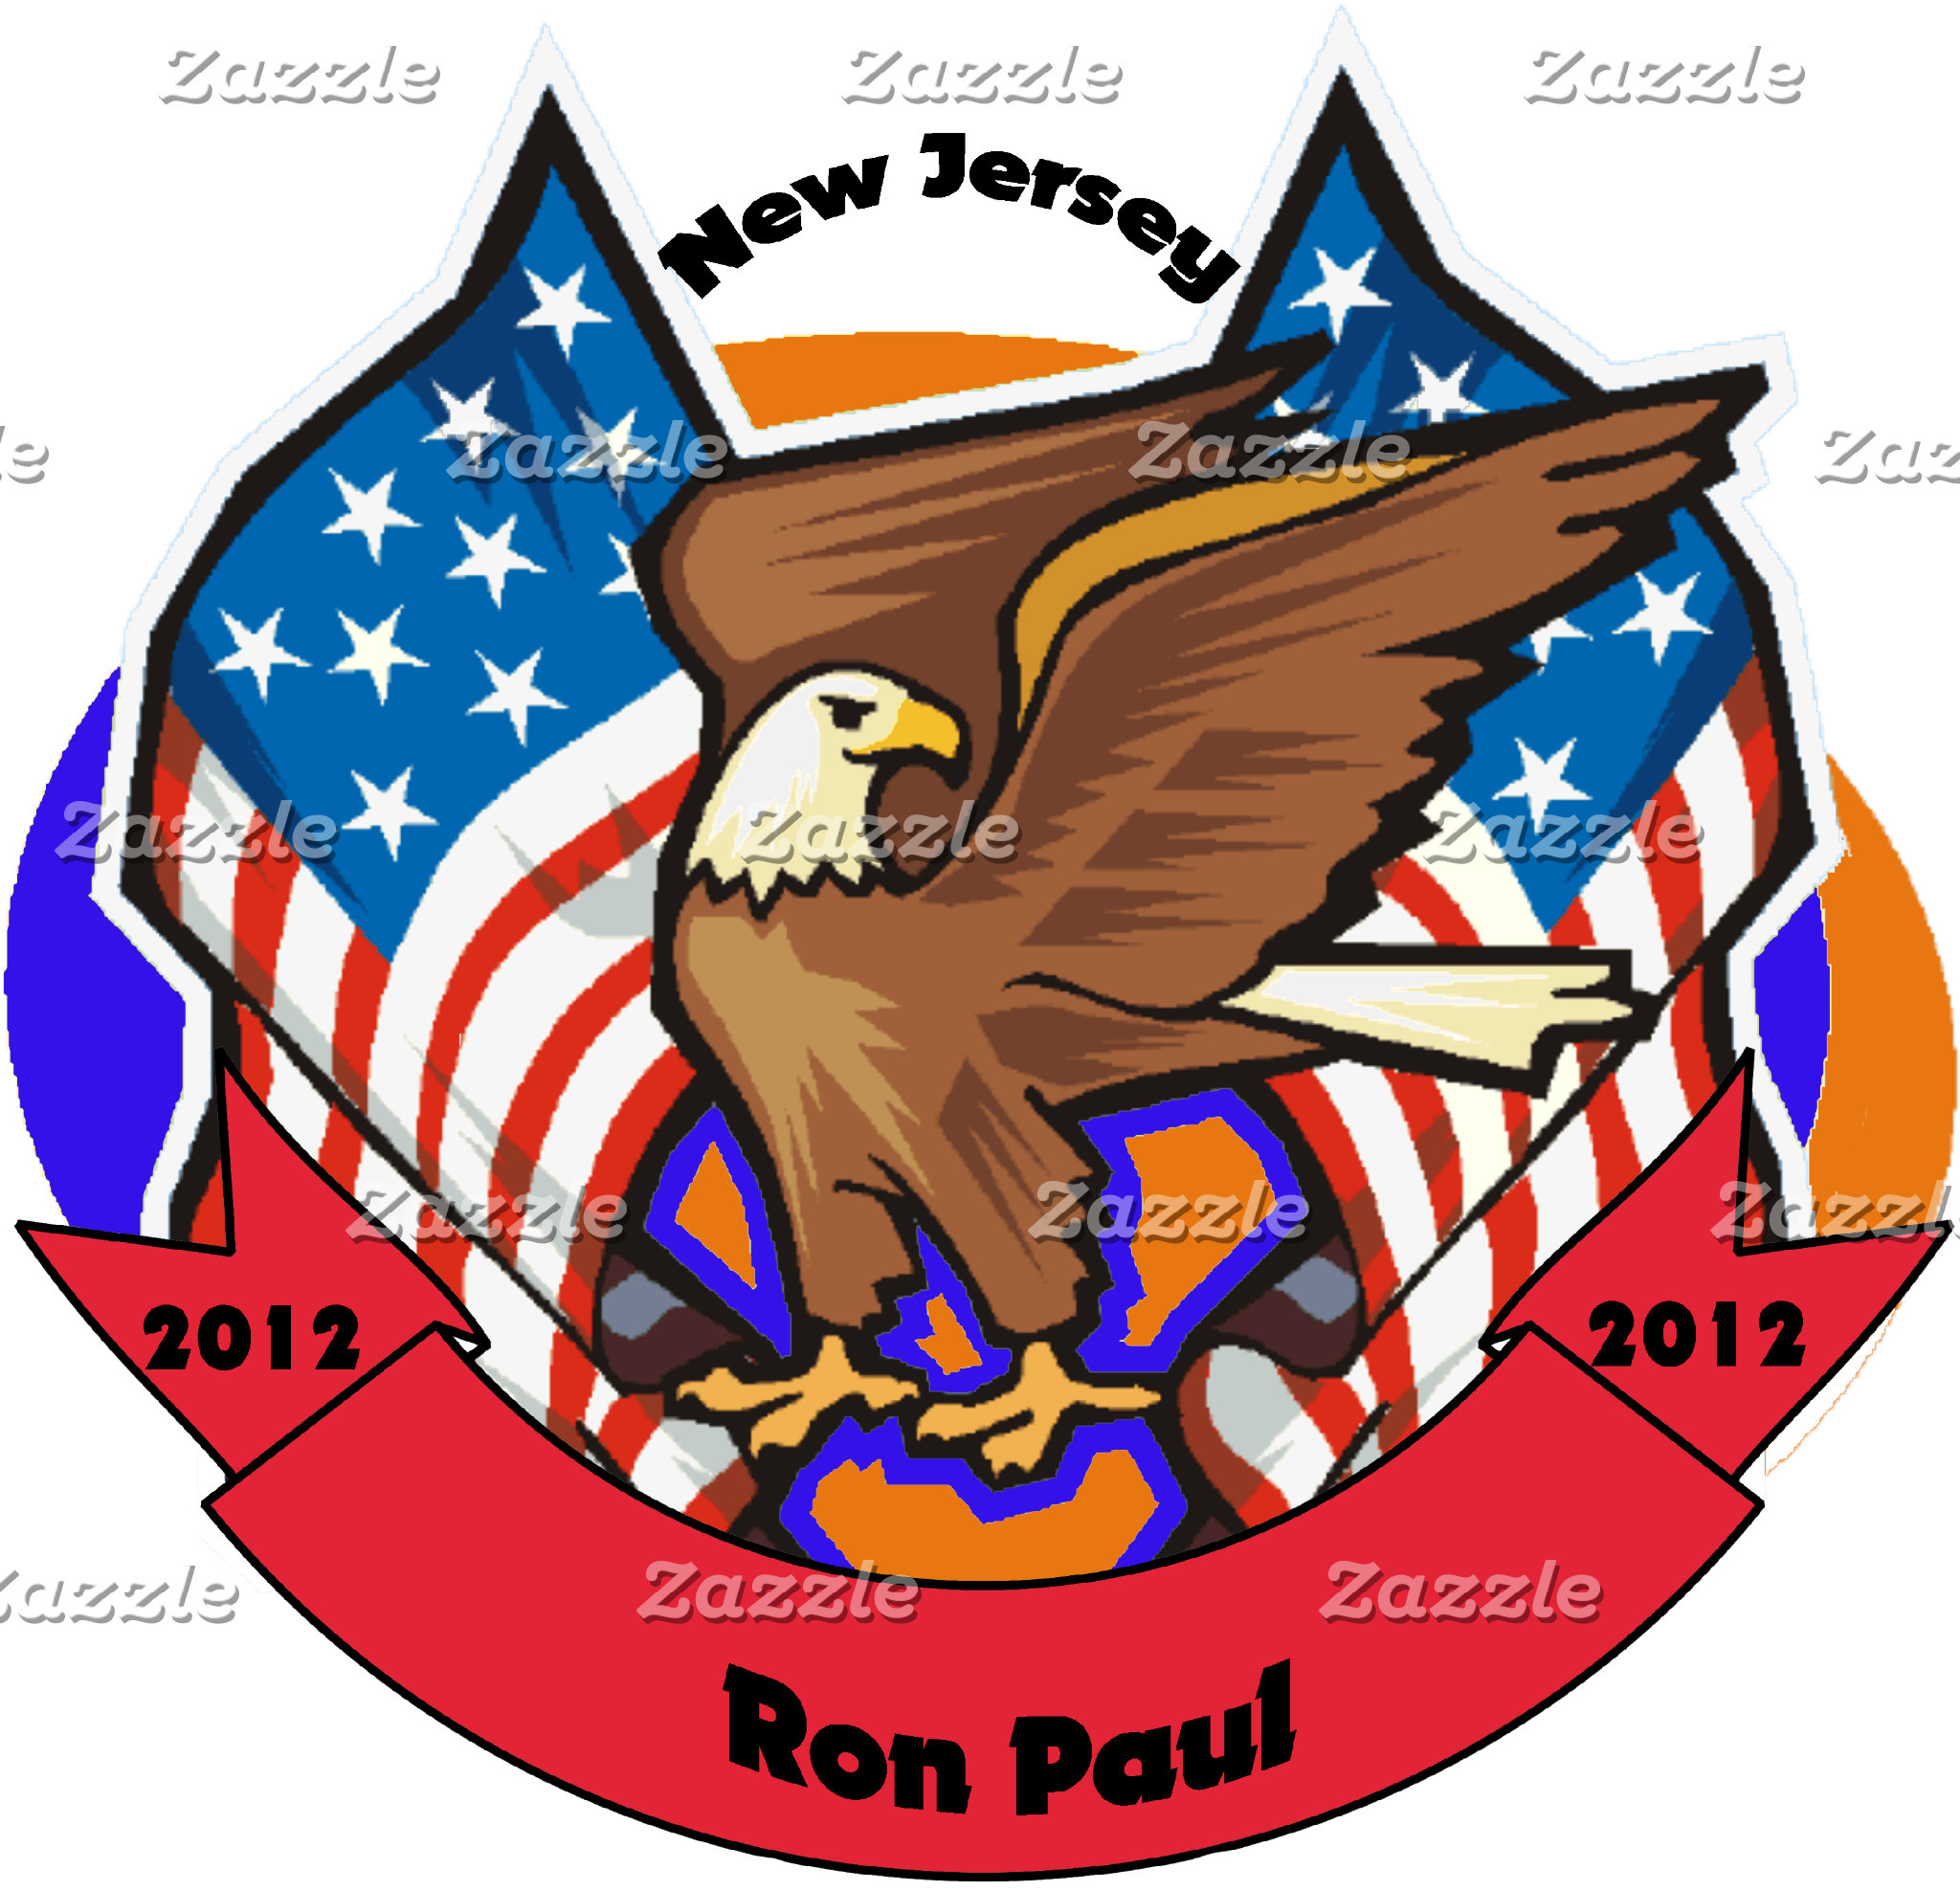 New Jersey for Ron Paul